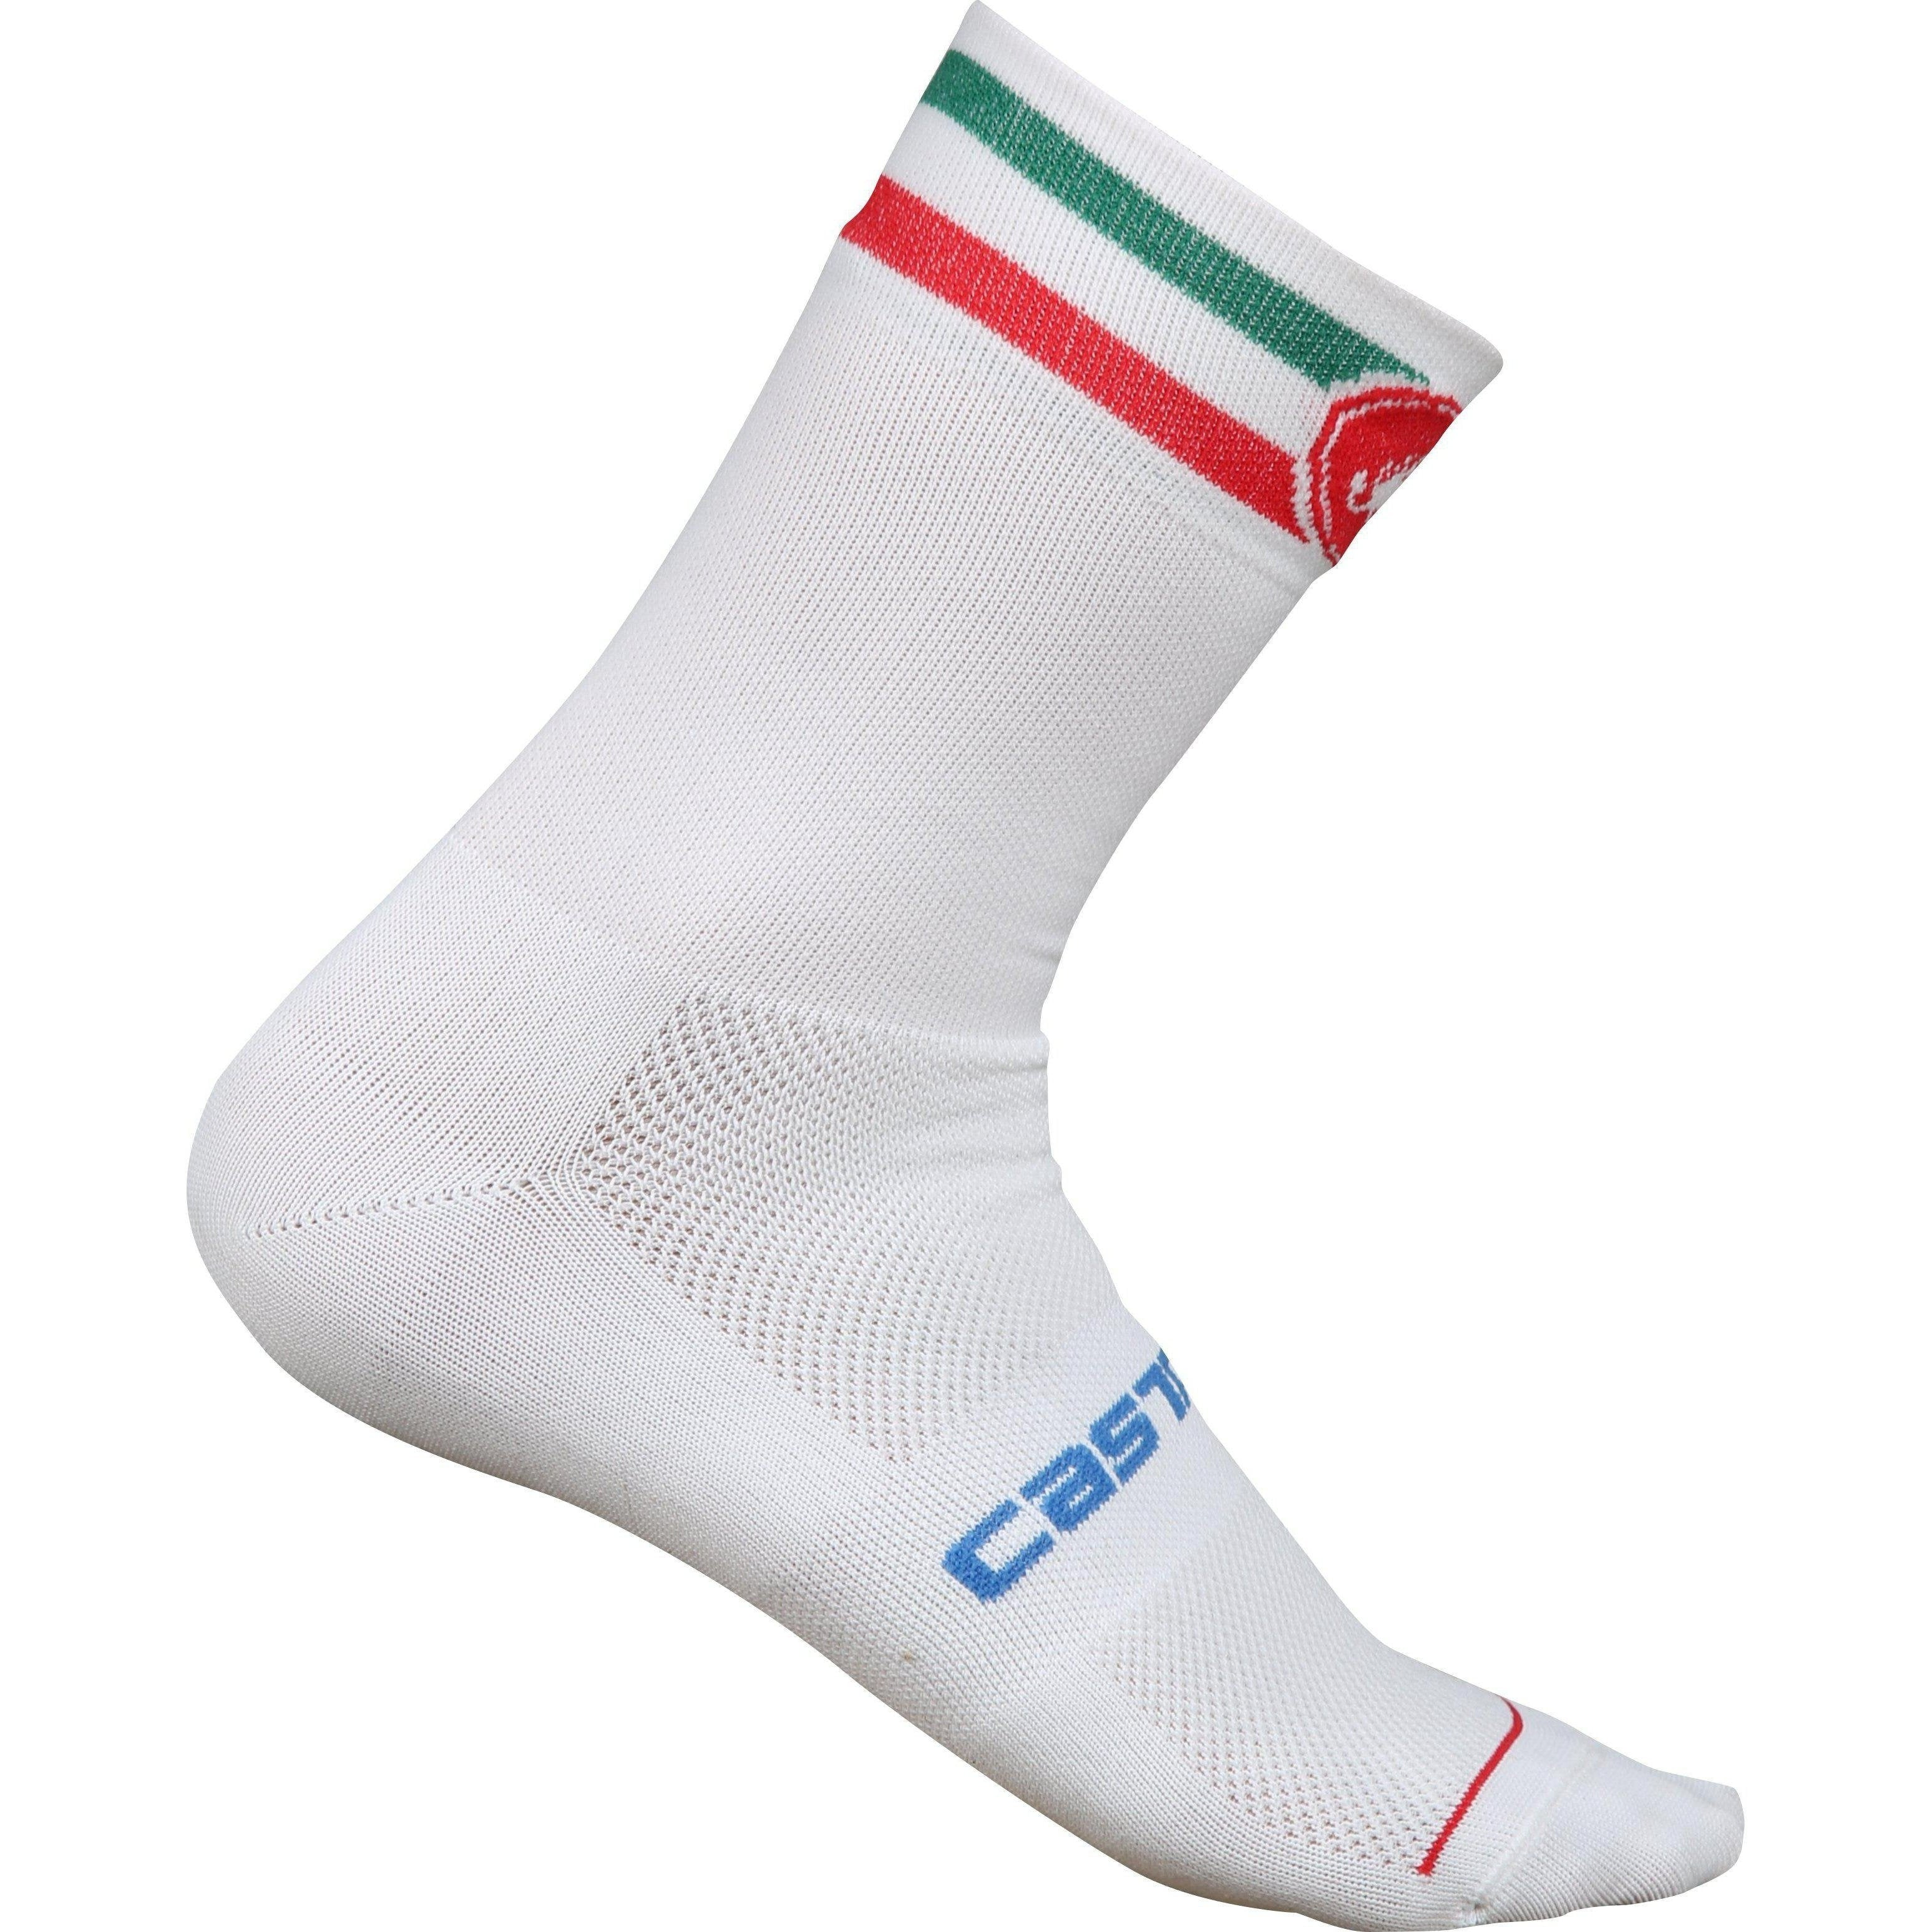 Castelli-Castelli Team Italia Socks - 2019-White-S/M-CS68080110019-saddleback-elite-performance-cycling